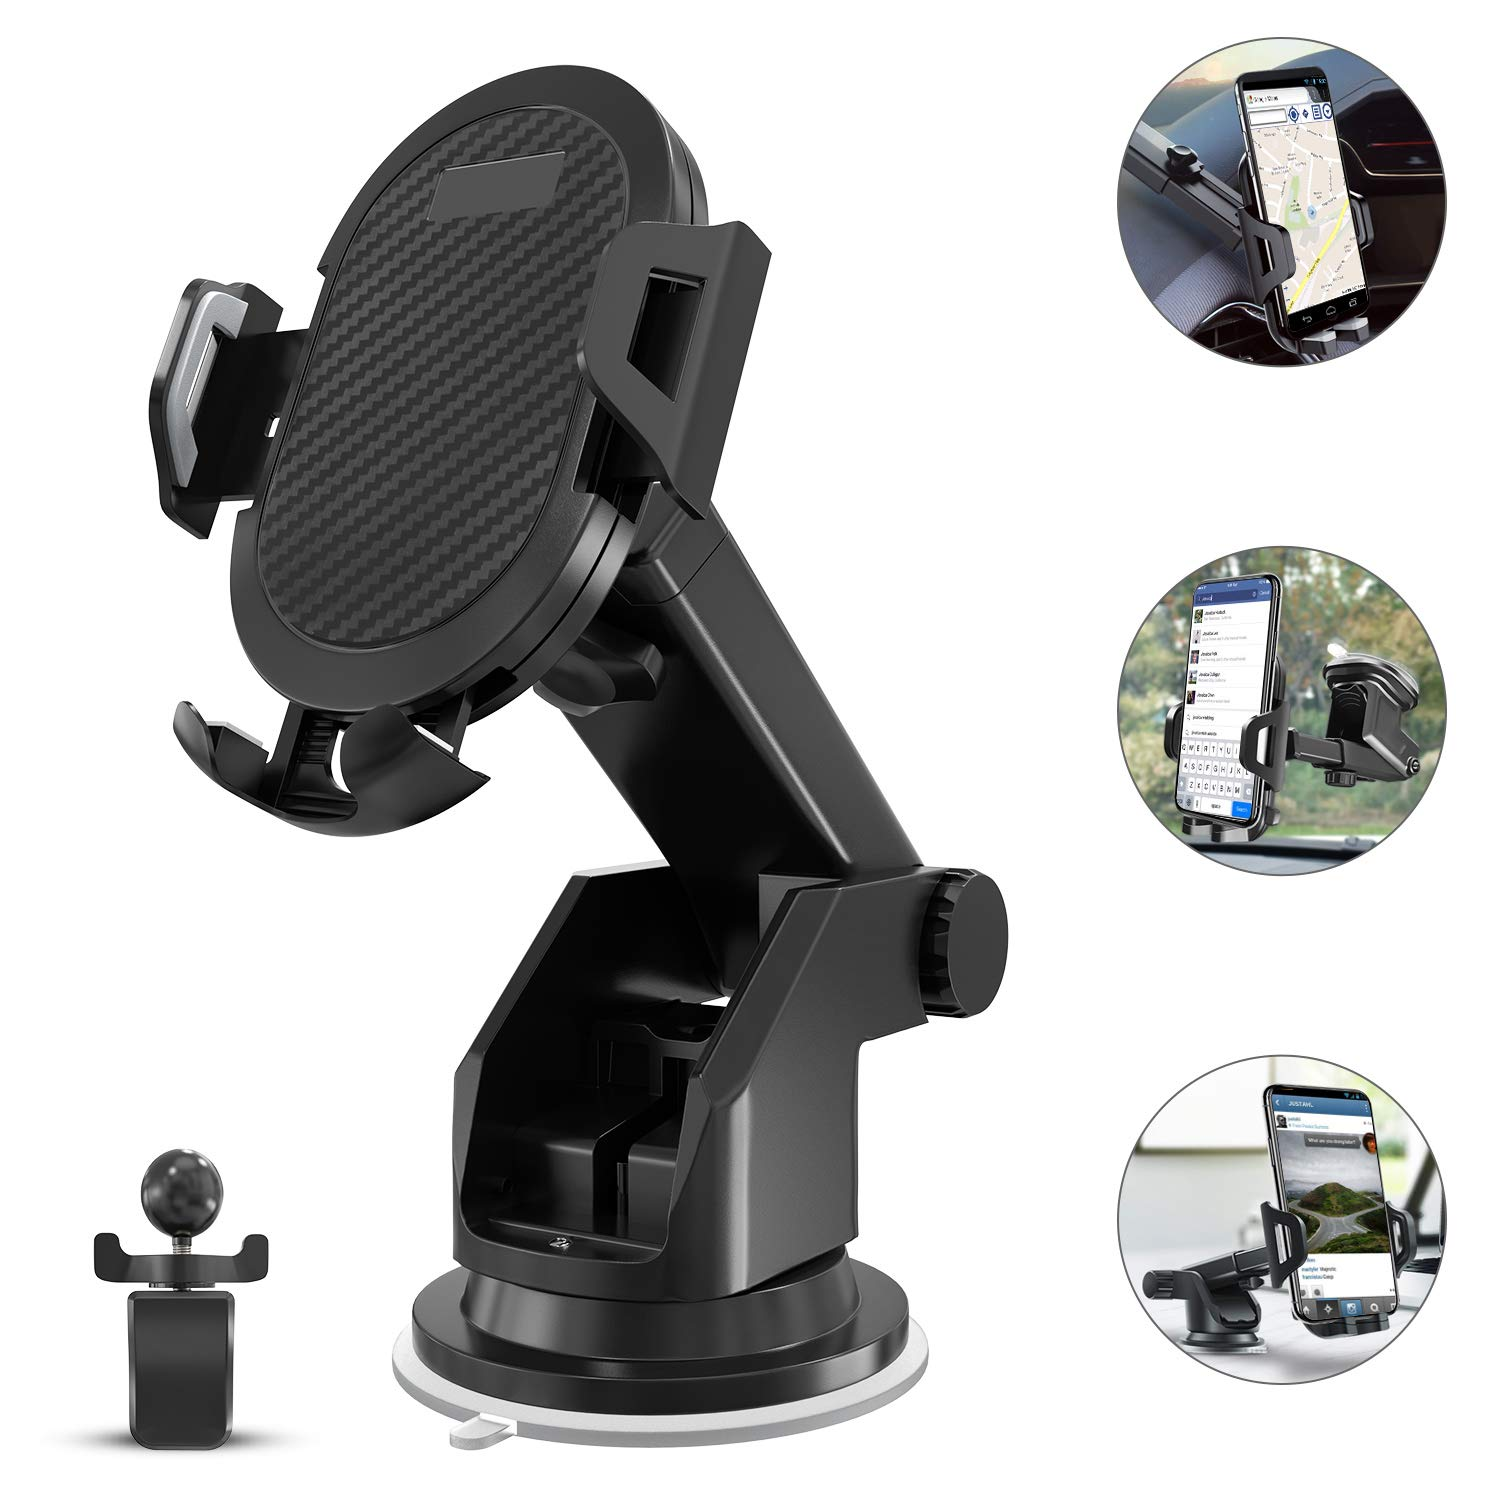 JDIBEST 2-in- 1 Dashboard Car Phone Mount,Car Phone Holder,Car Air Vent Mount Holder Cradle and Adjustable Windshield Holder Cradle with 360° Rotation for iPhone, Android - 2018 Upgrade